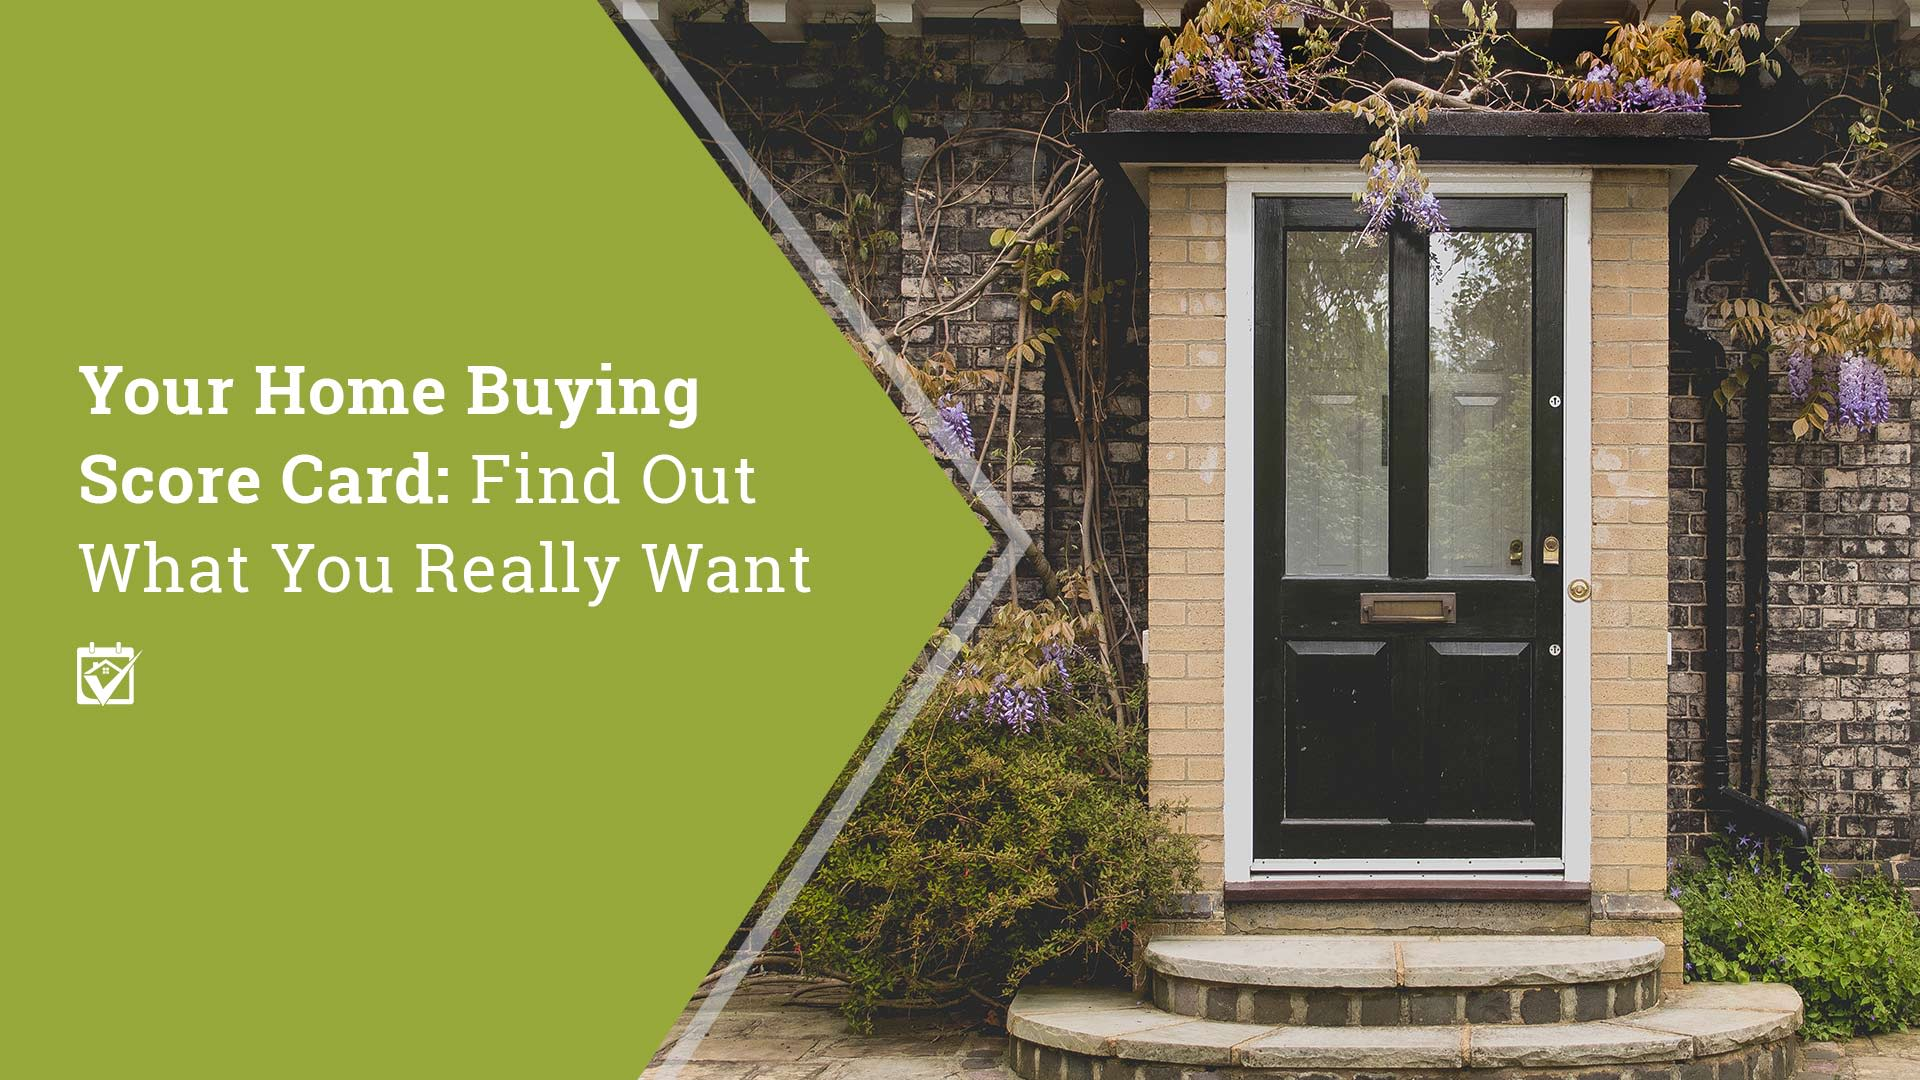 Your Home Buying Score Card: Find Out What You Really Want